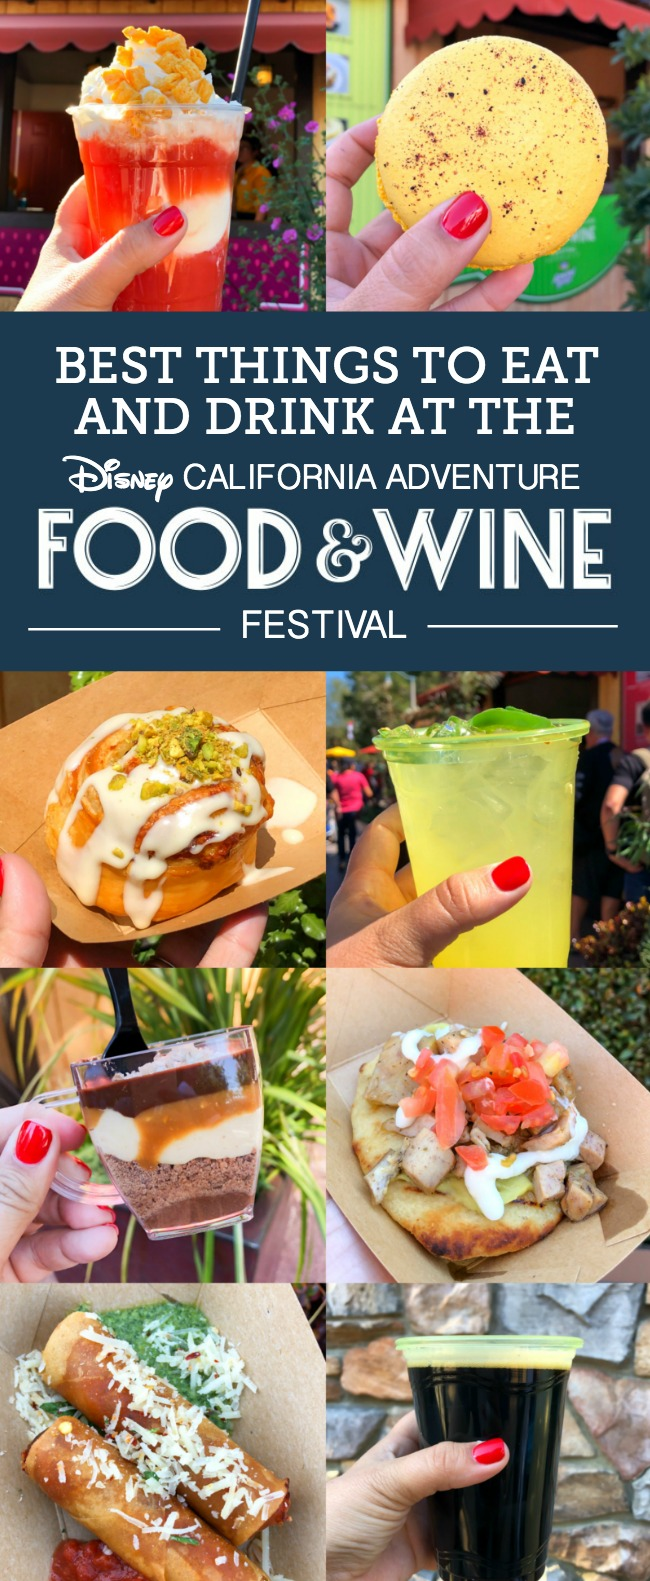 From Meyer Lemon Macaron to the Ghost Pepper Mac & Cheese, there are so many great bites and brews to discover at the Disney California Adventure Food and Wine Festival!